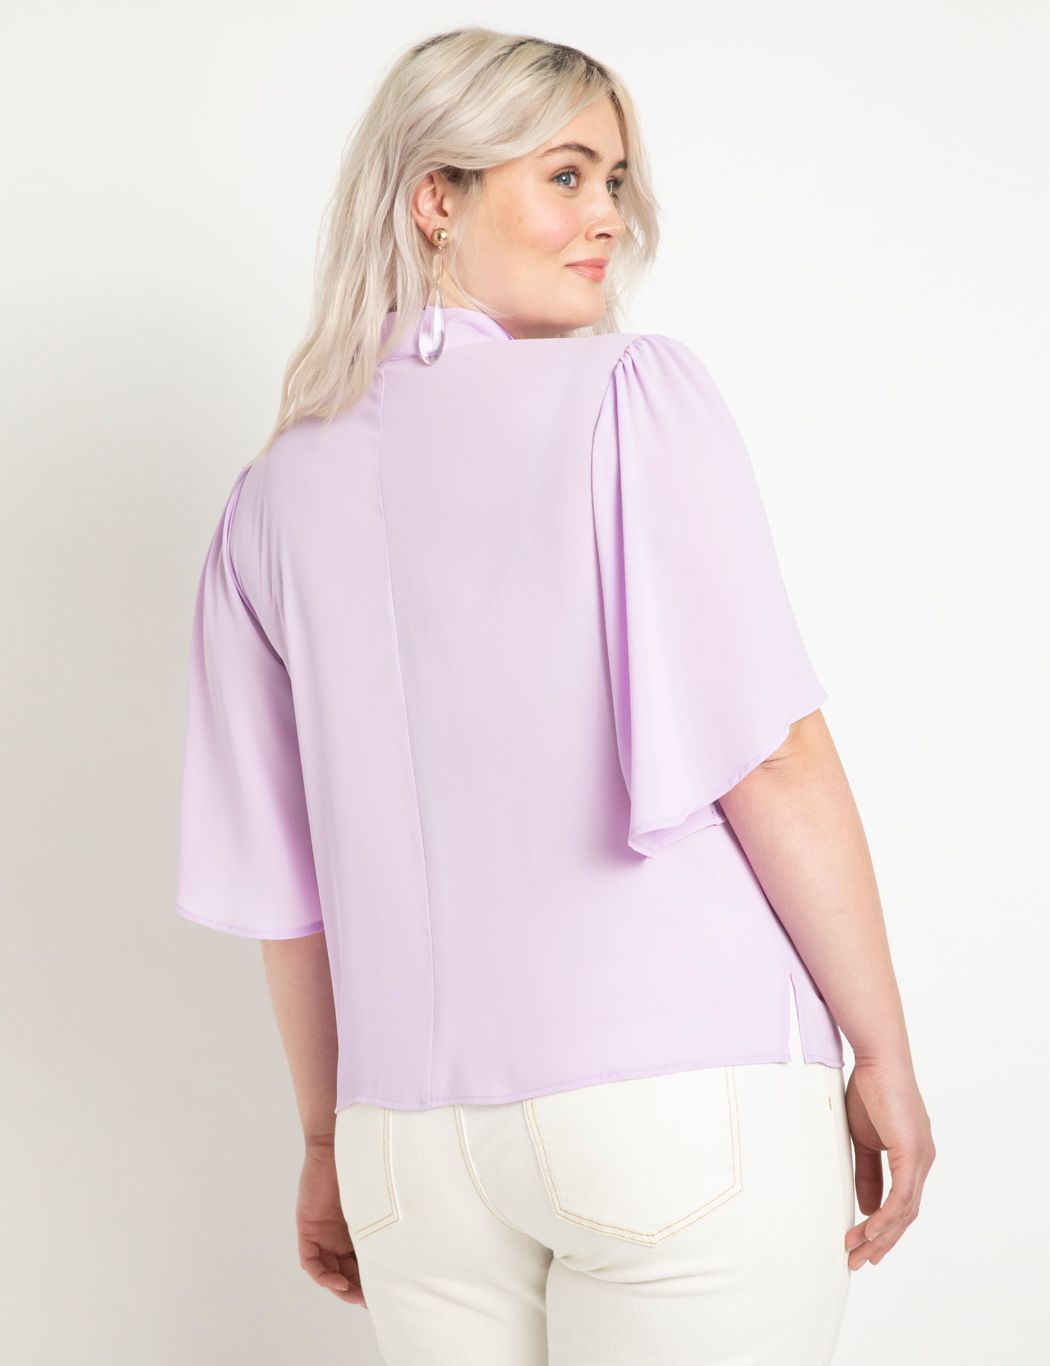 Bow Blouse with Flutter Sleeve